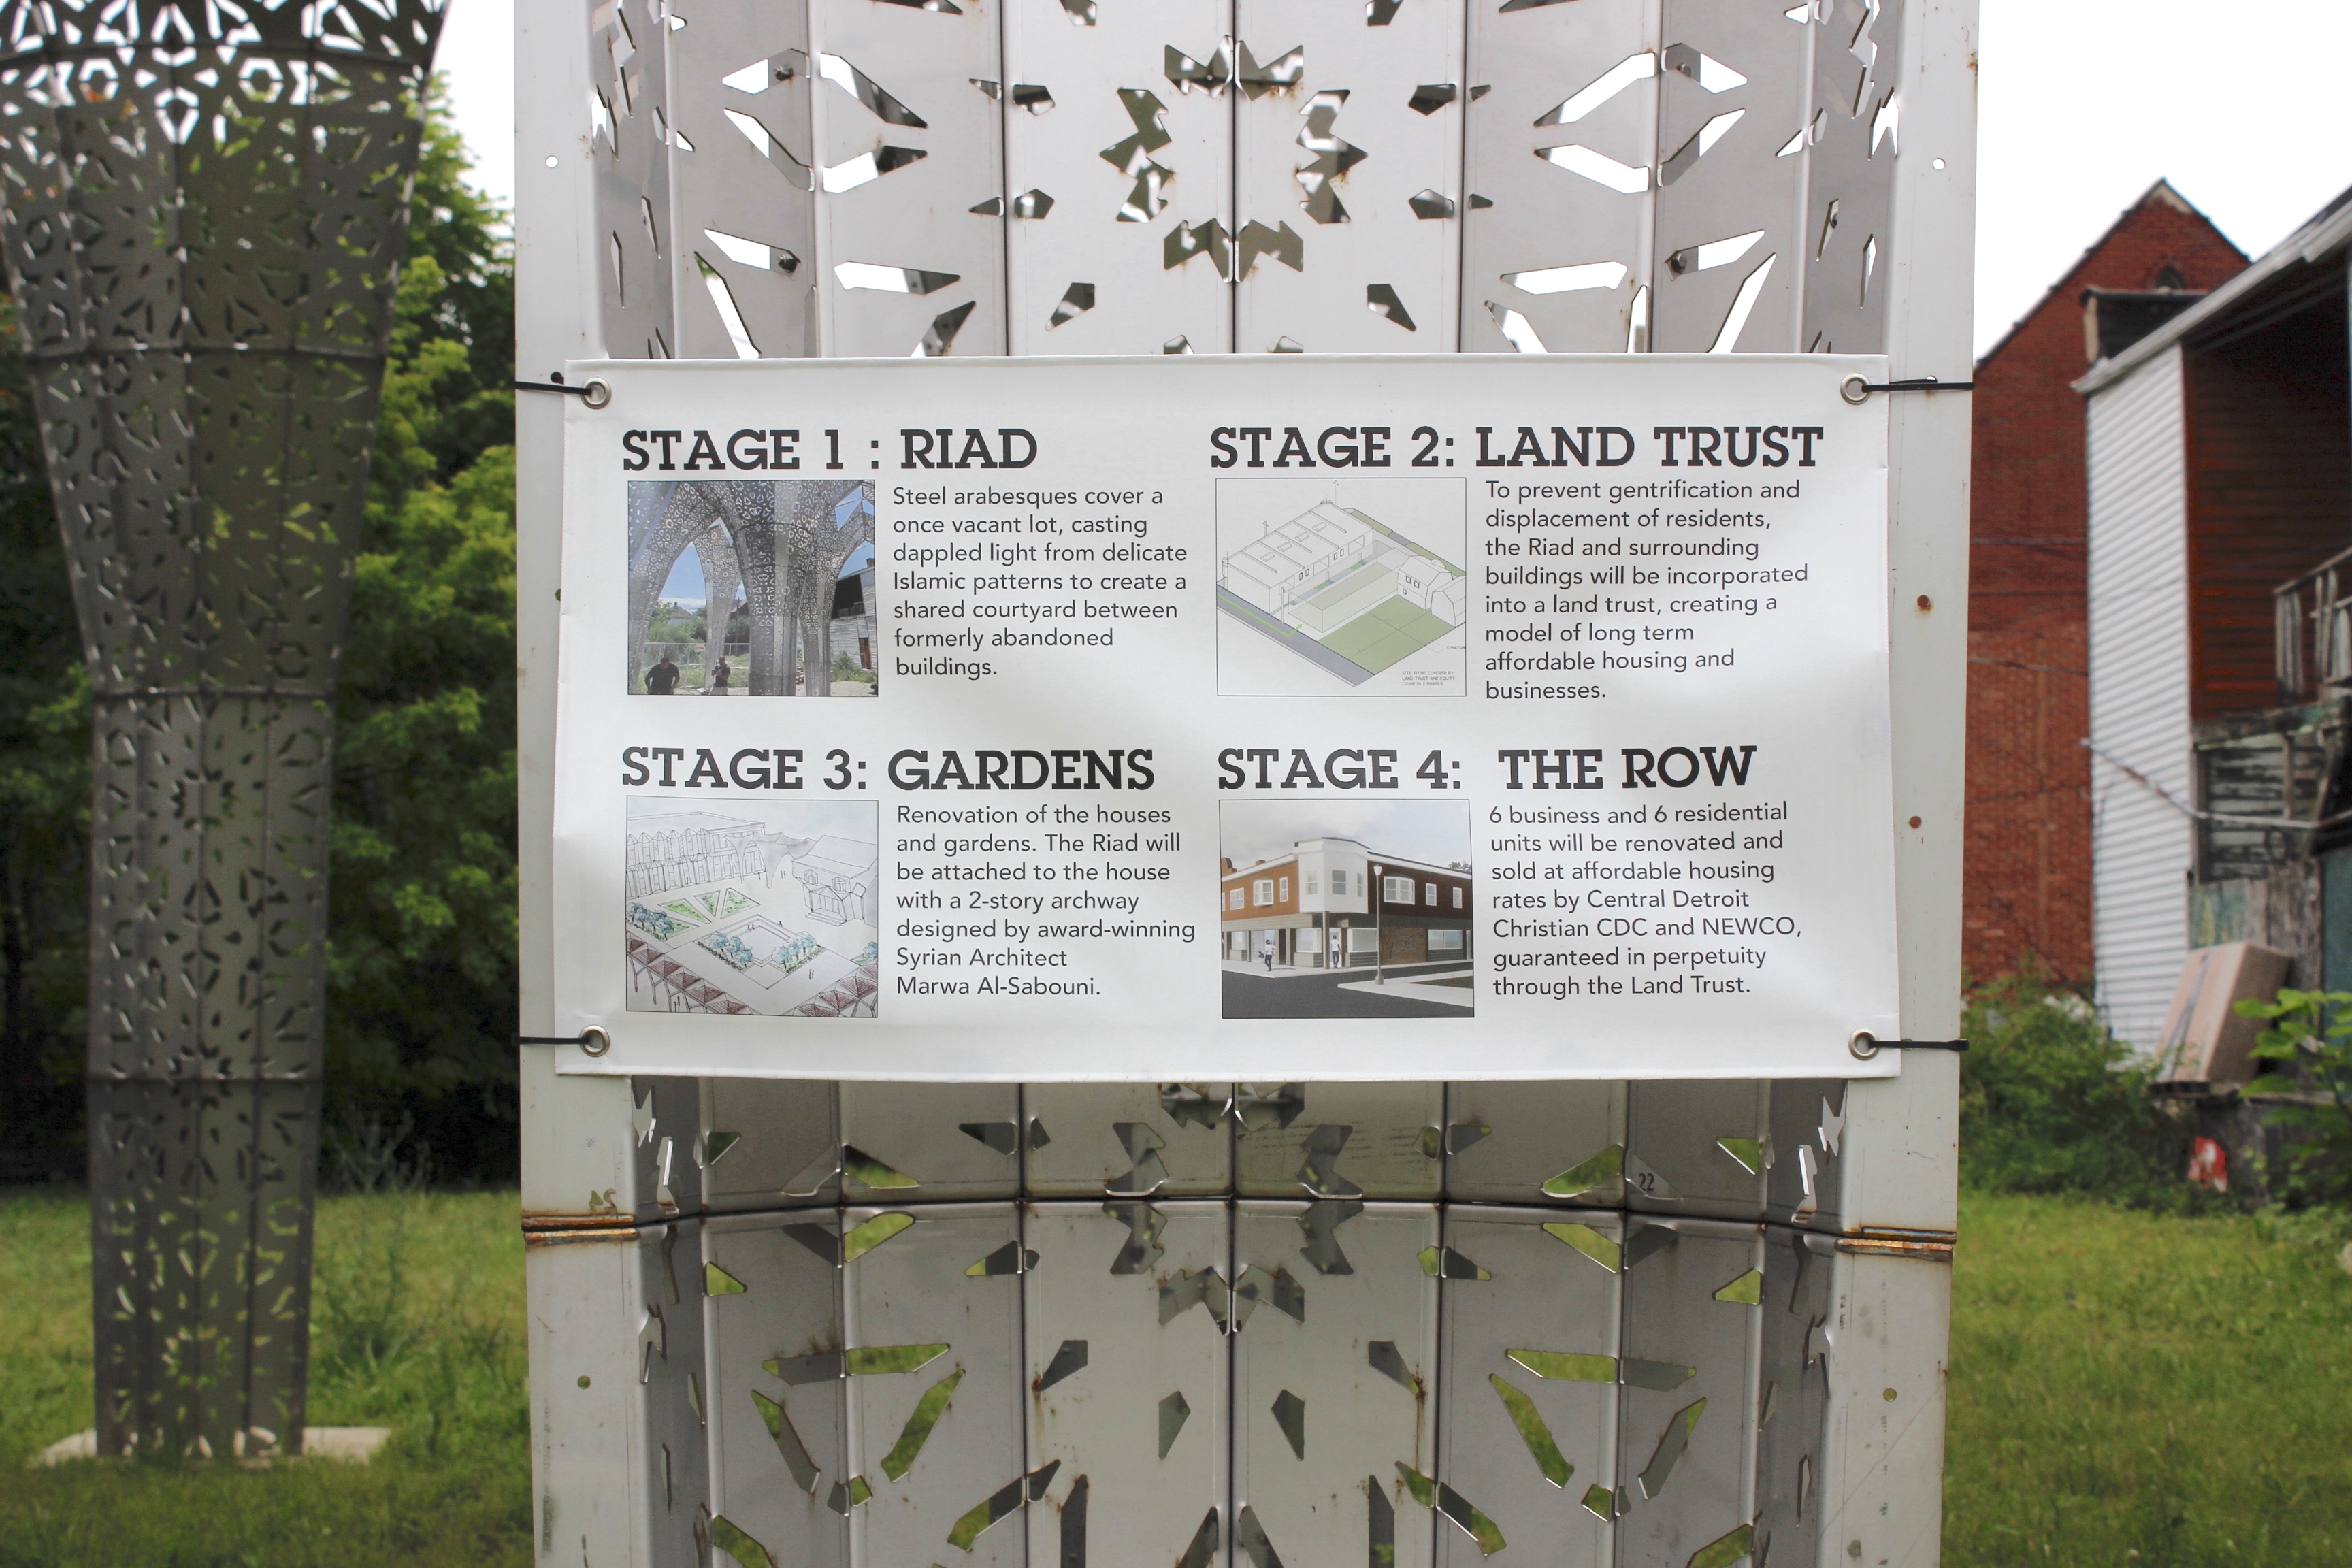 Photograph of metal structure in the foreground of a yard, with a sign attached listing four stages of the American Riad project.